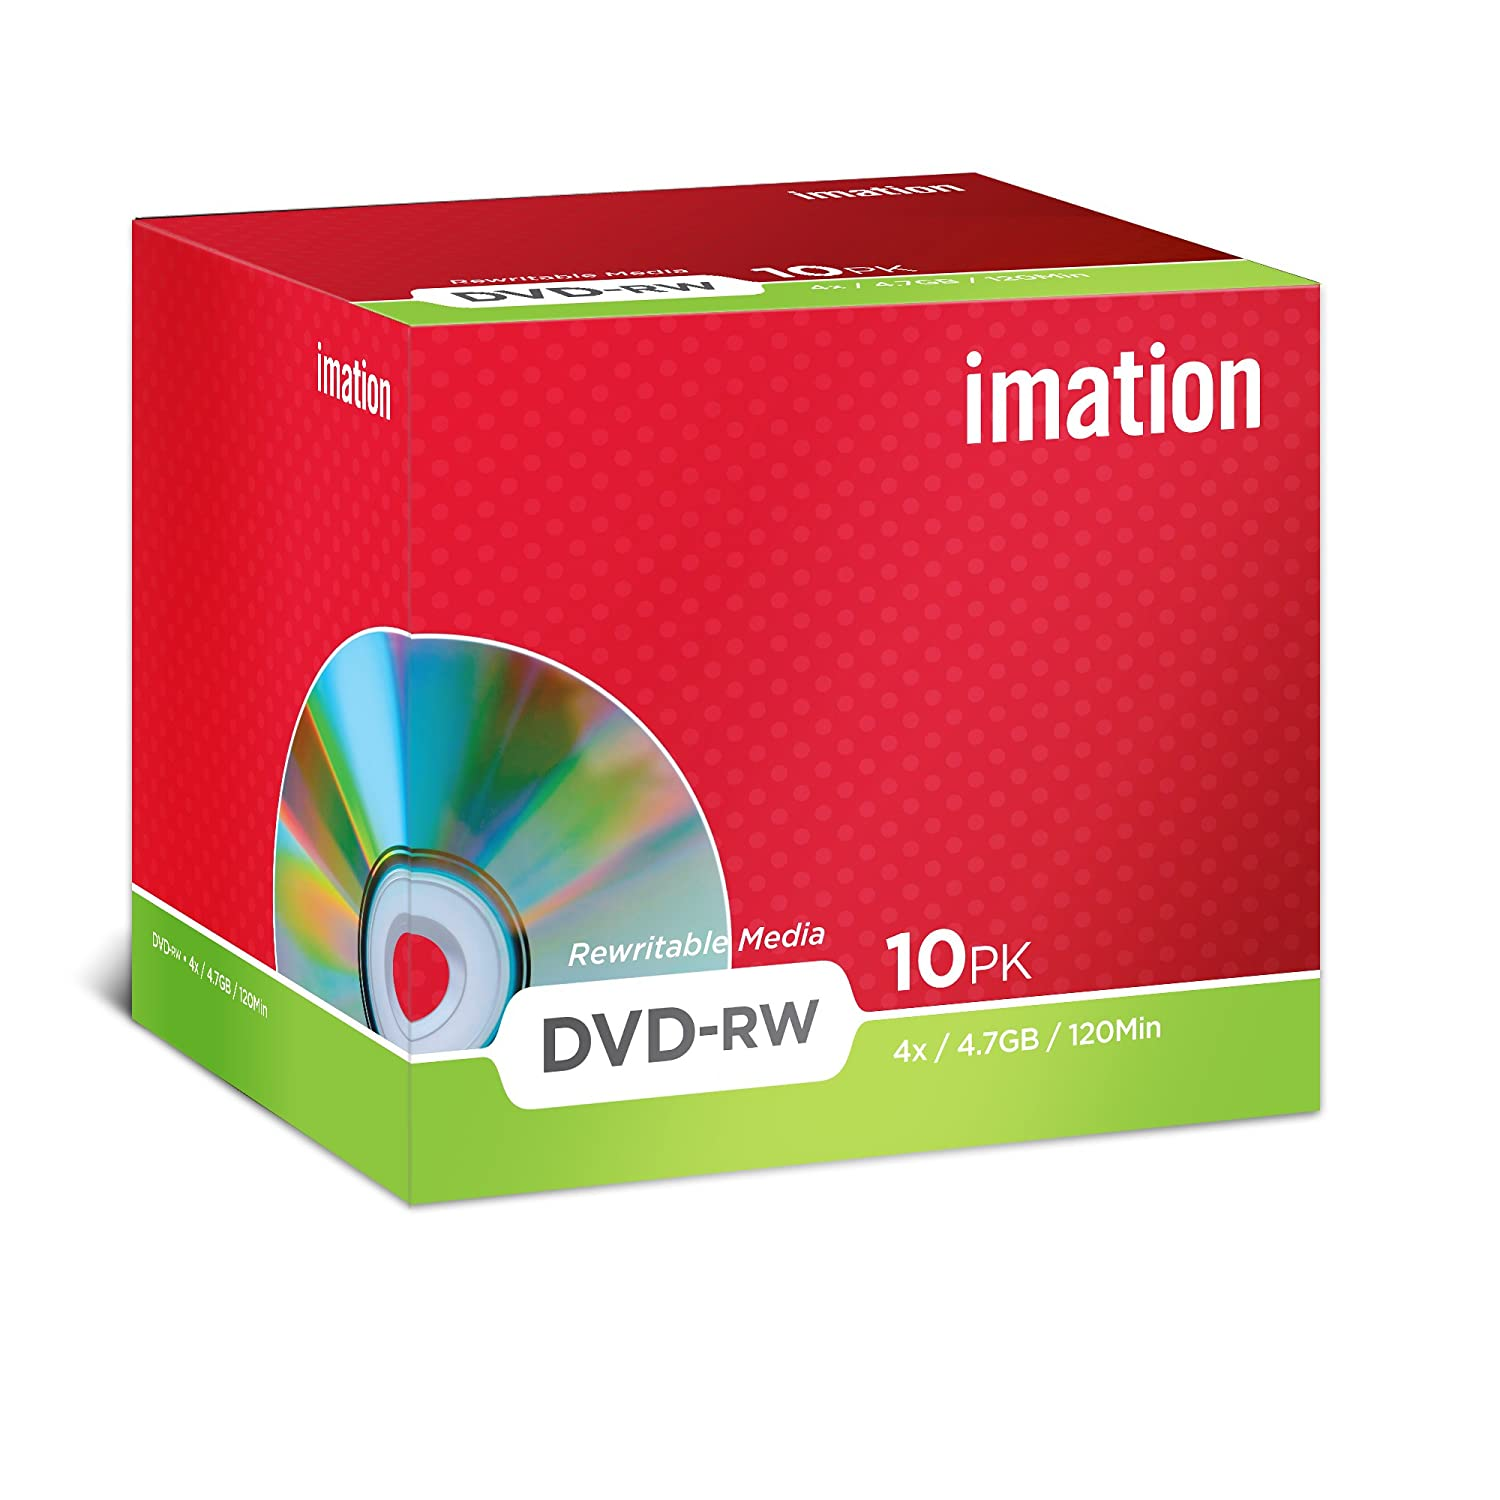 Imation Dvd-rw 4.7gb 1= Pack 10 Jewel Case * BOX OF 2 *